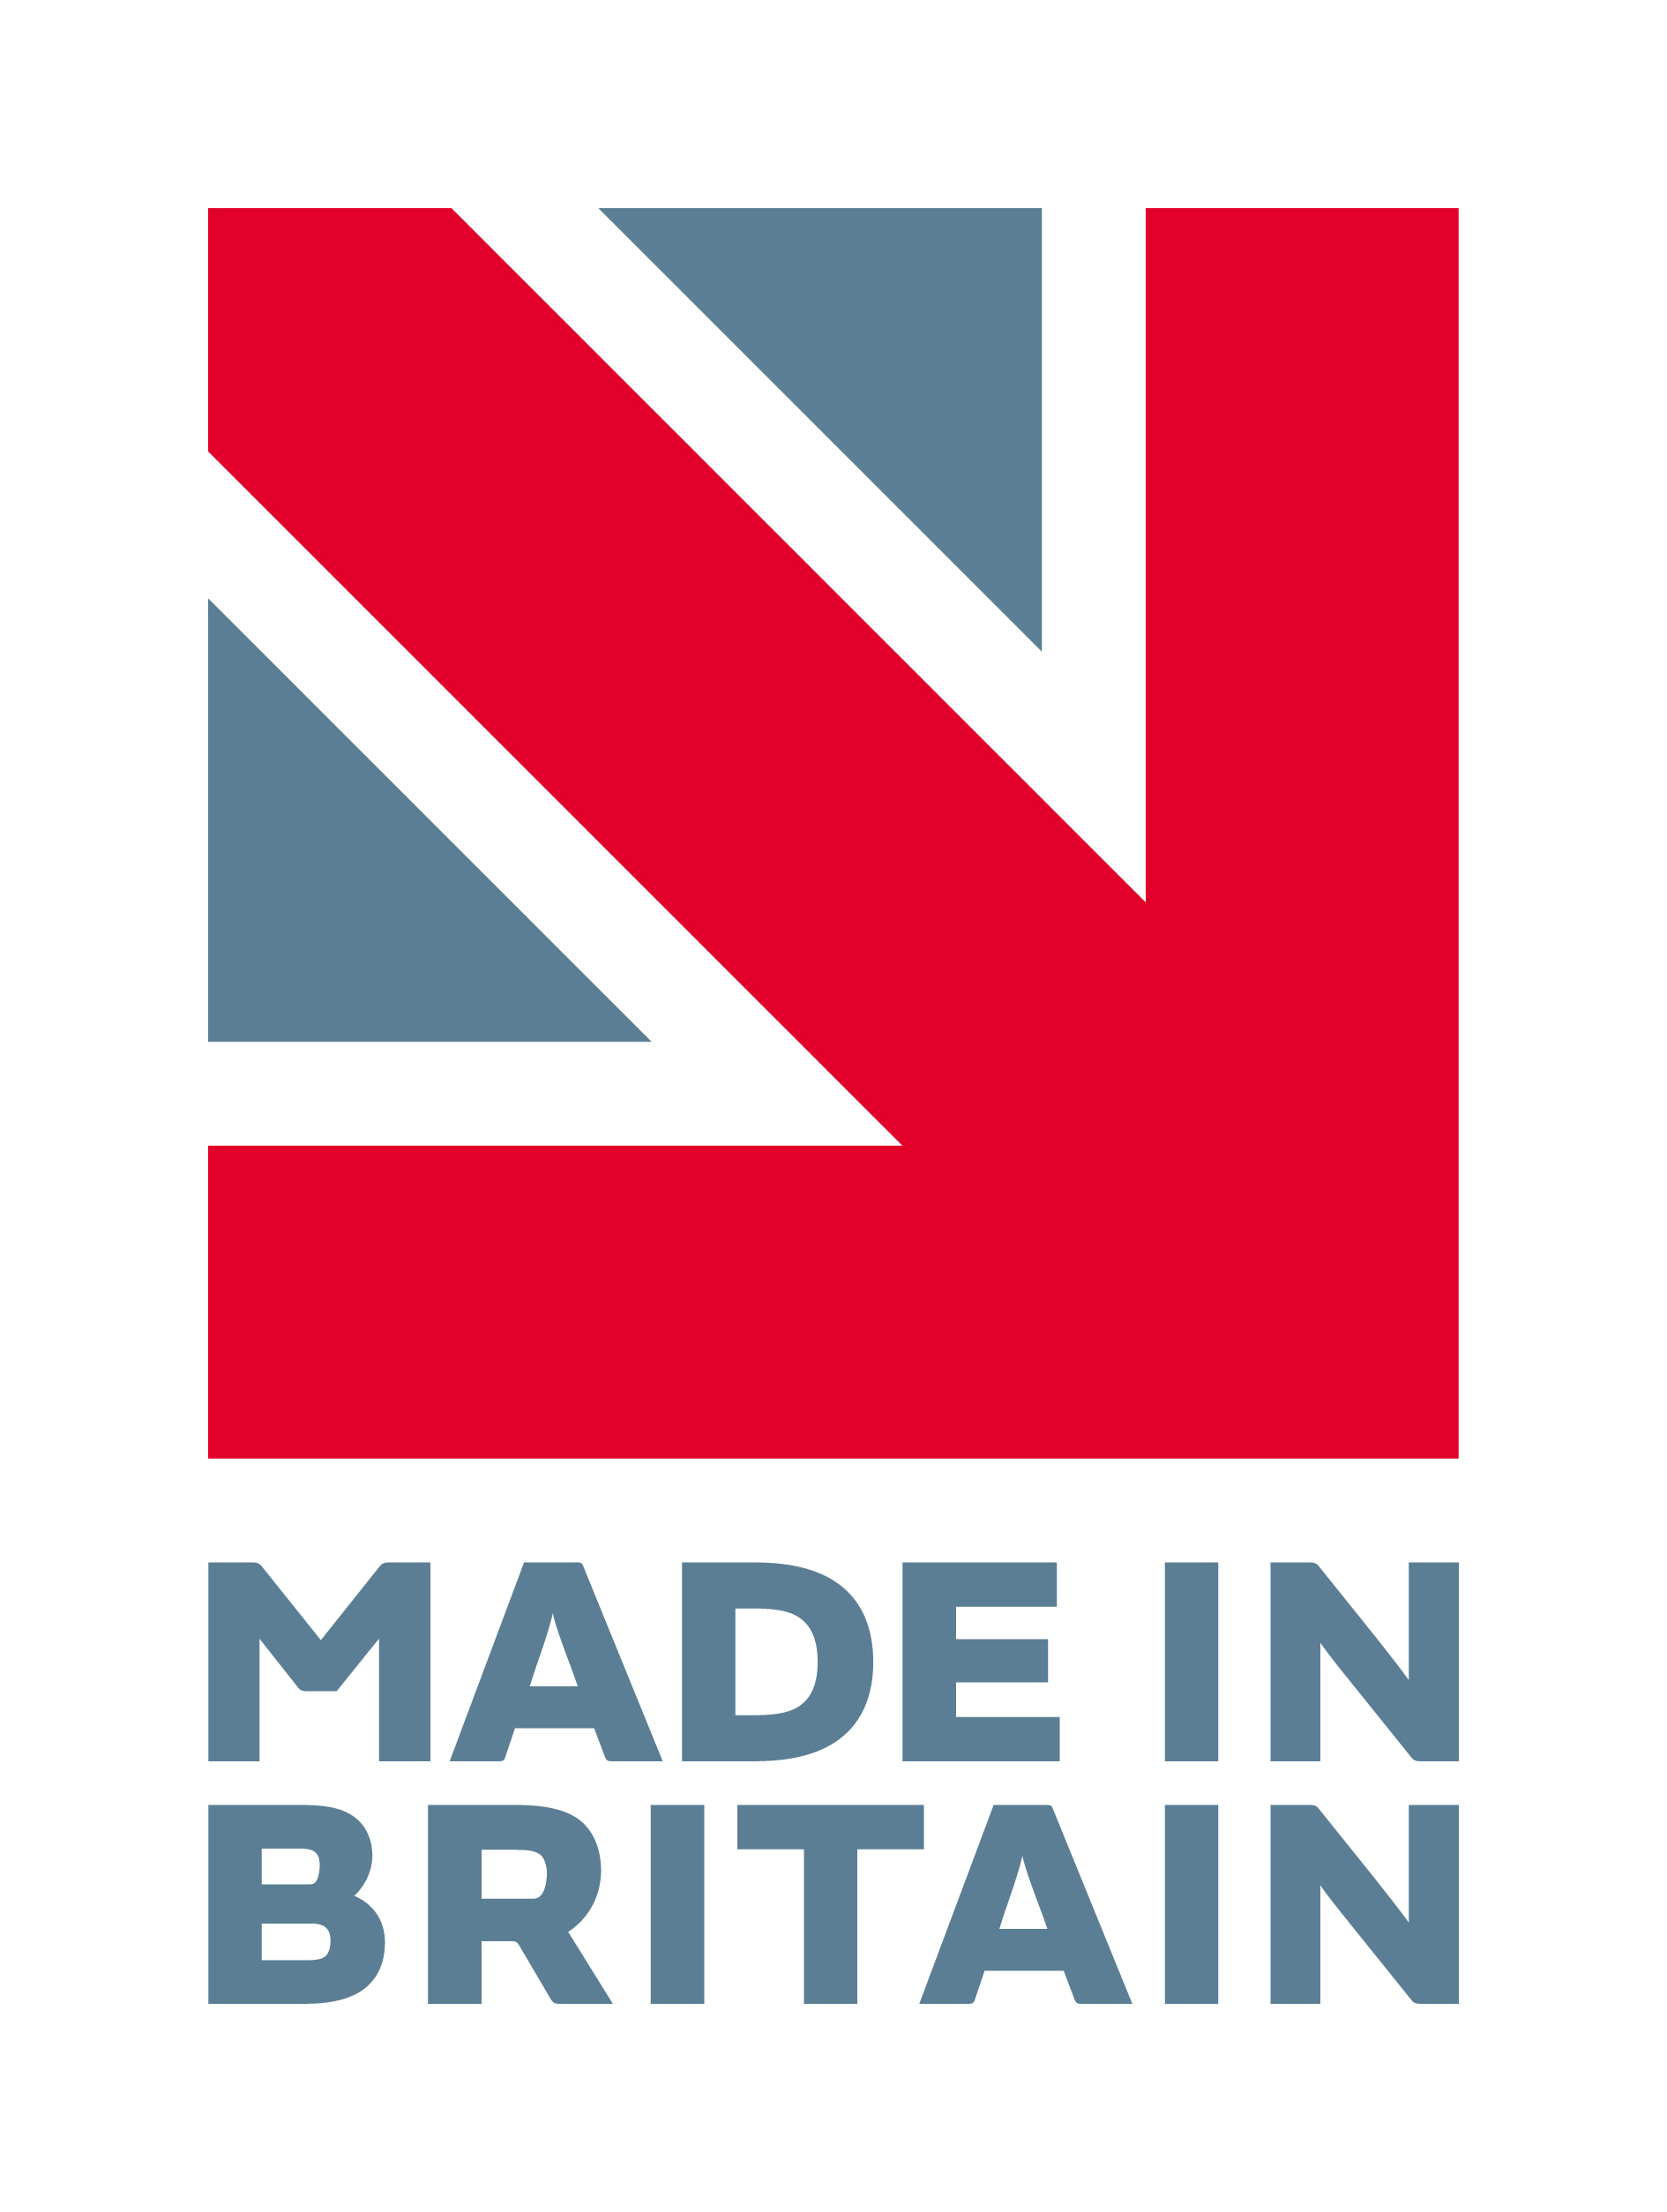 Proud to source UK made products